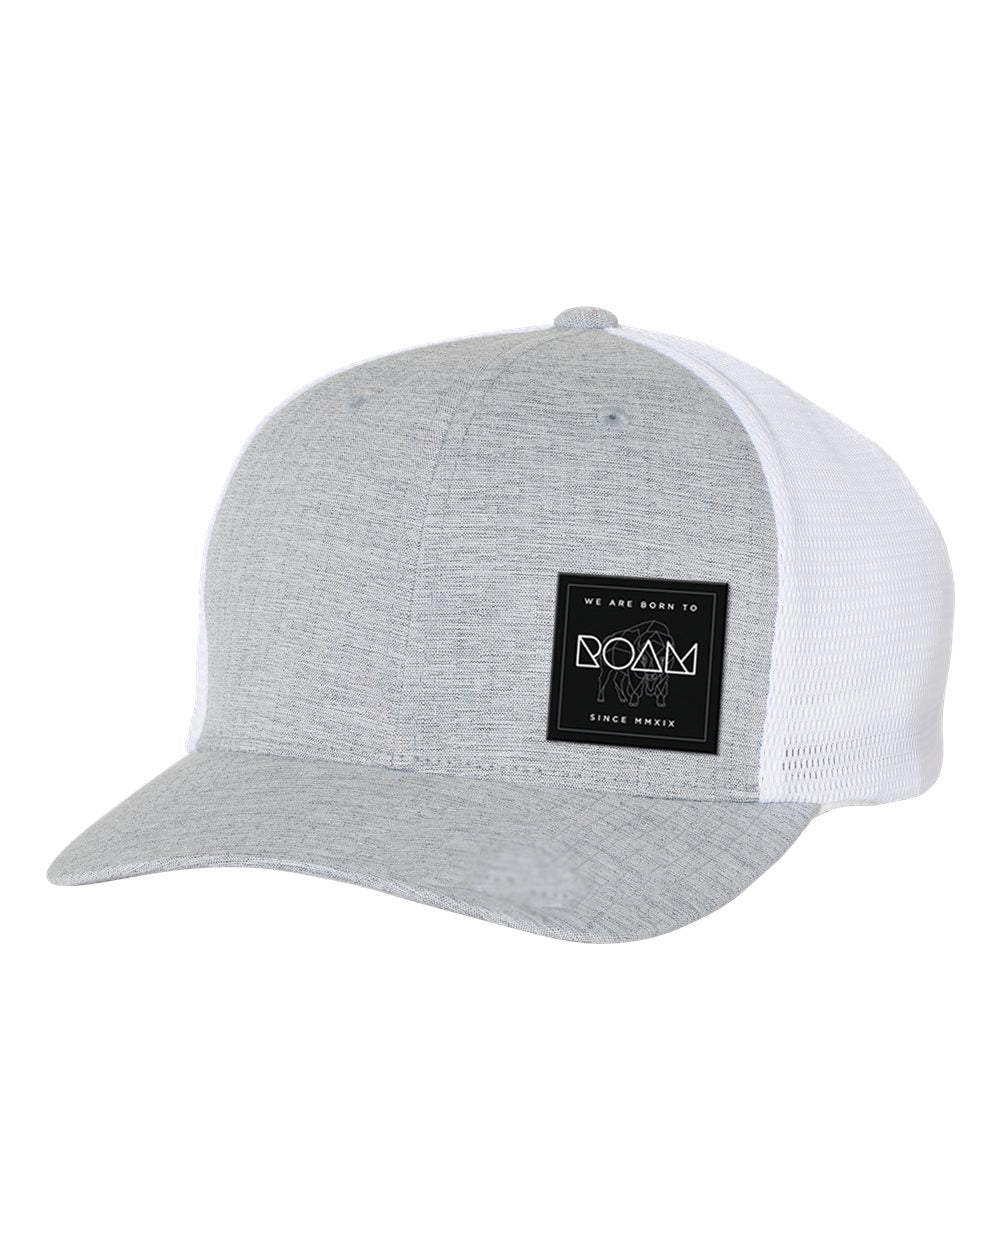 Mosaic Overlay Patch Flexfit Snapback - Silver/White - Front